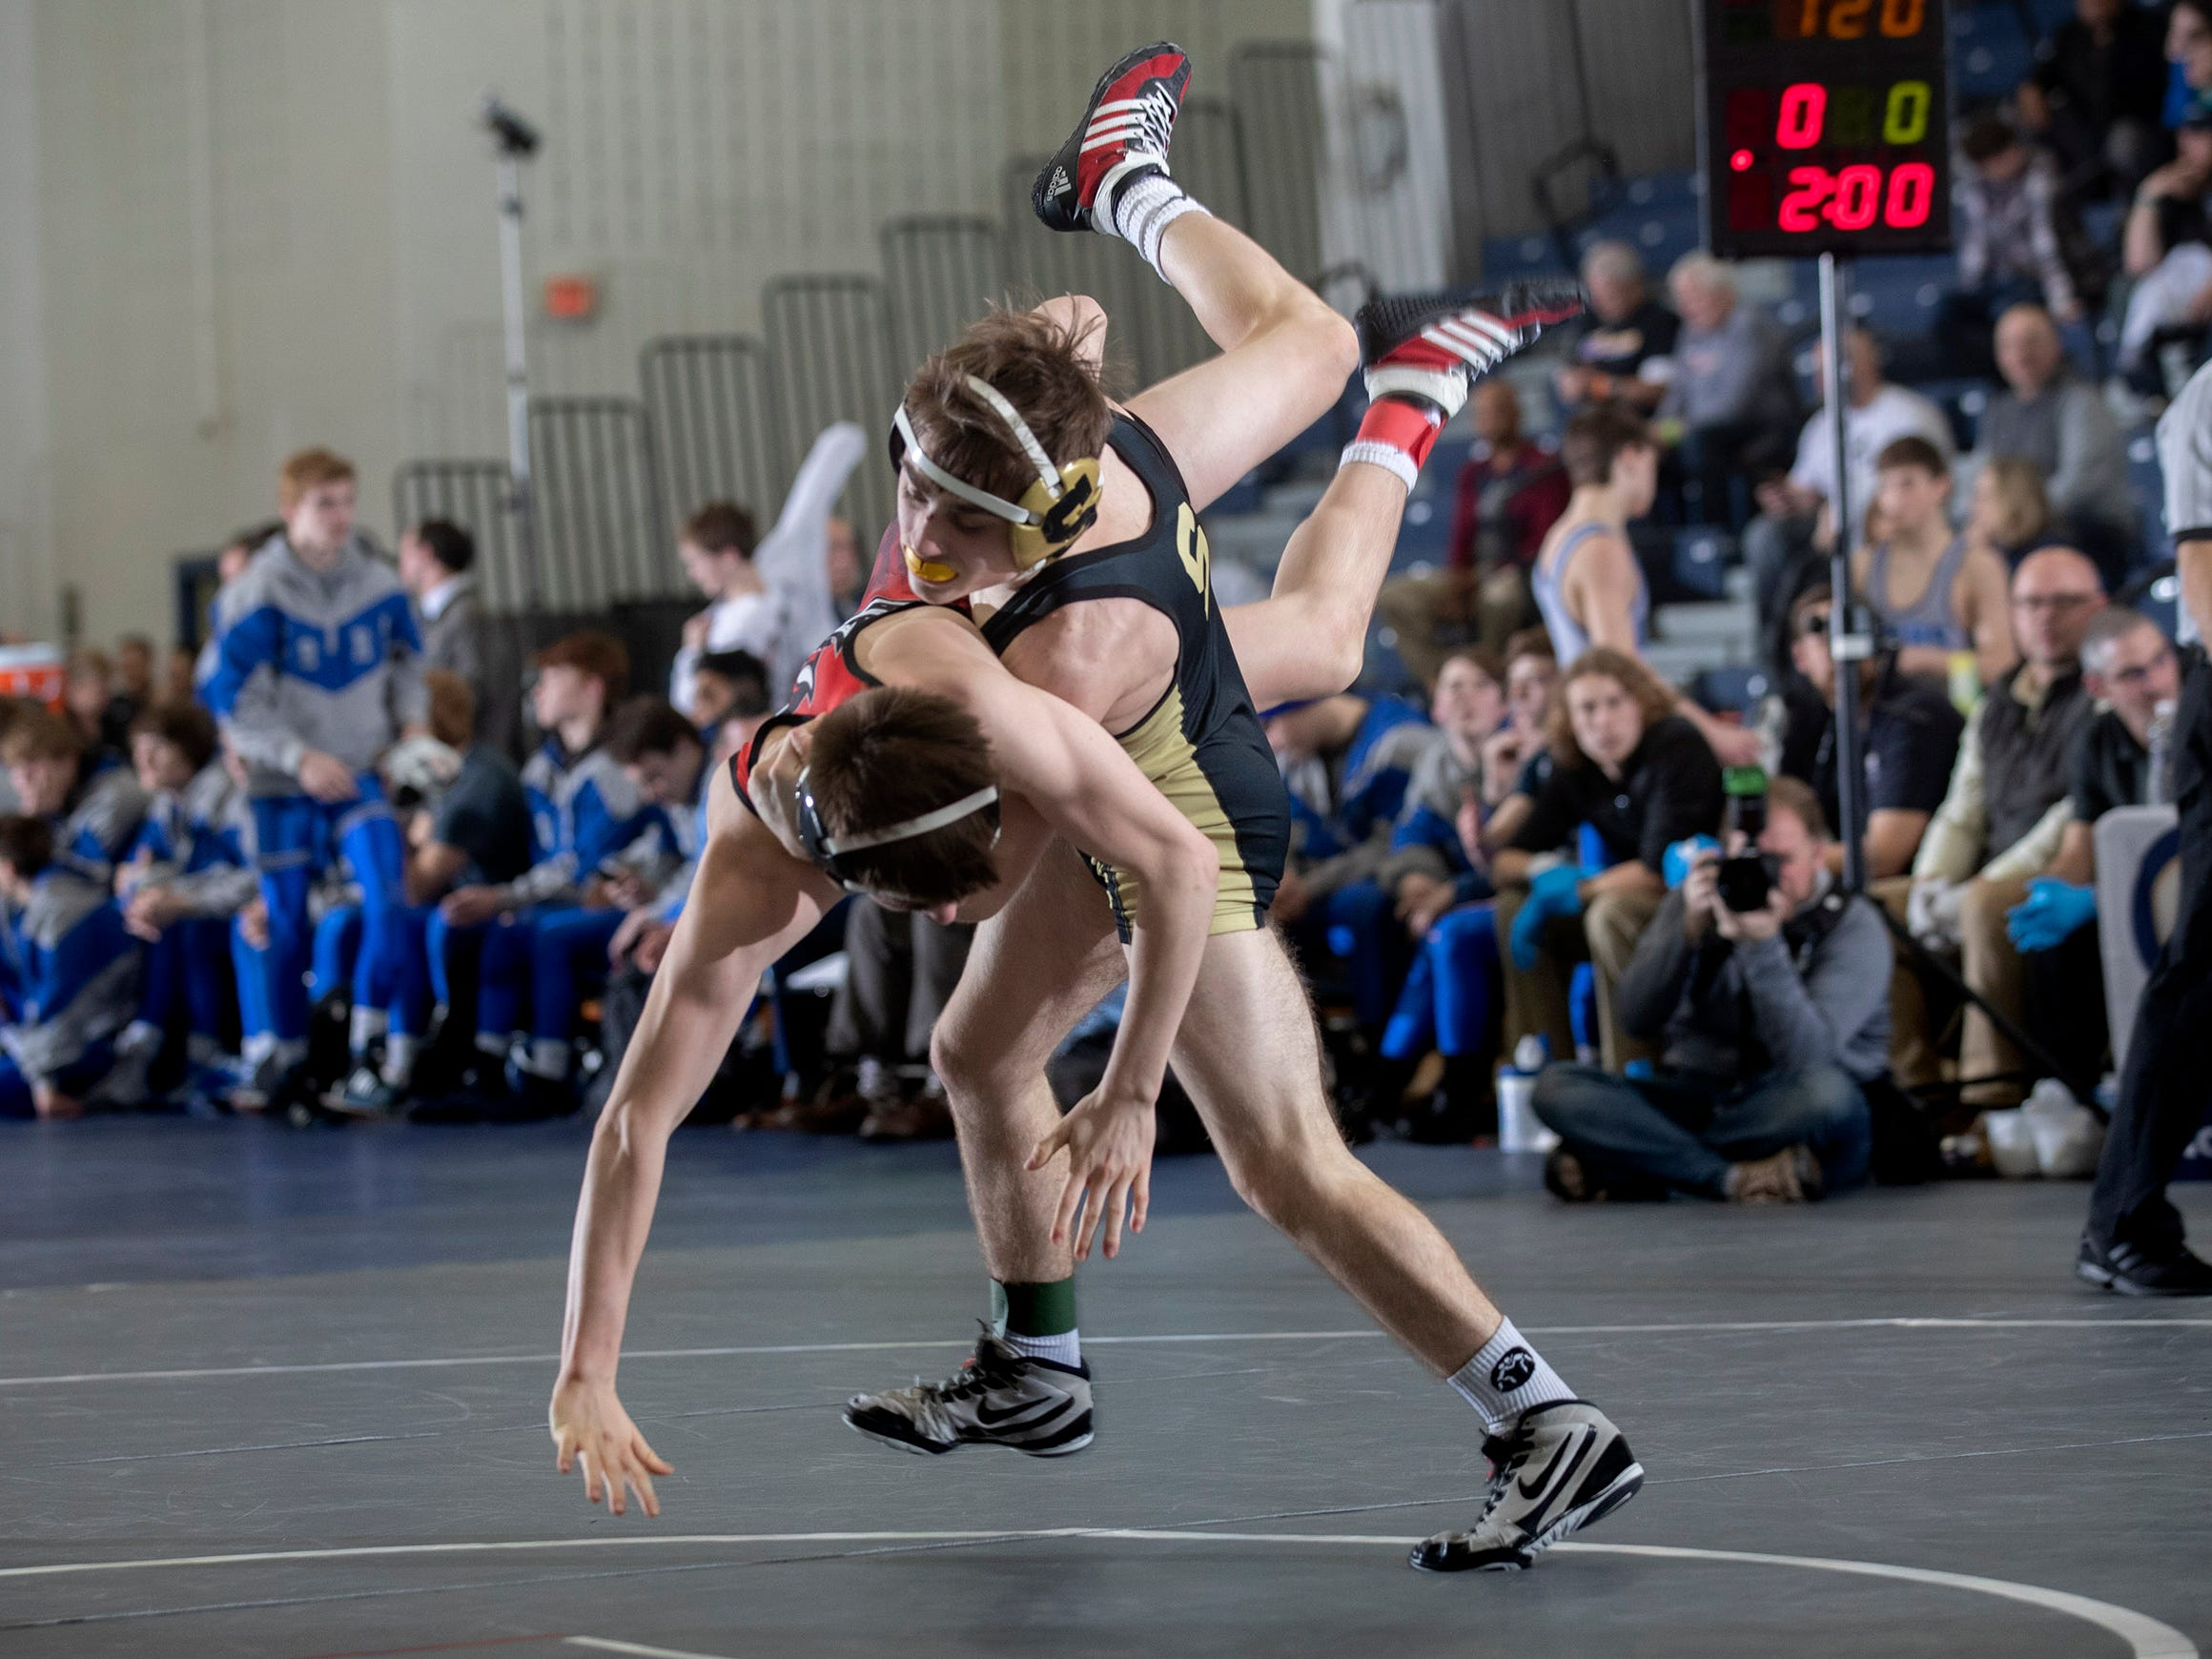 Southern's Jayson Scerbo defeated Hunterdon Central's Southern Regional vs Hunterdon Central in NJSIAA Teamick Canonica 7-1 in their 113 lbs.  Wrestling Group V Final in Toms River NJ on February 10 , 2019.